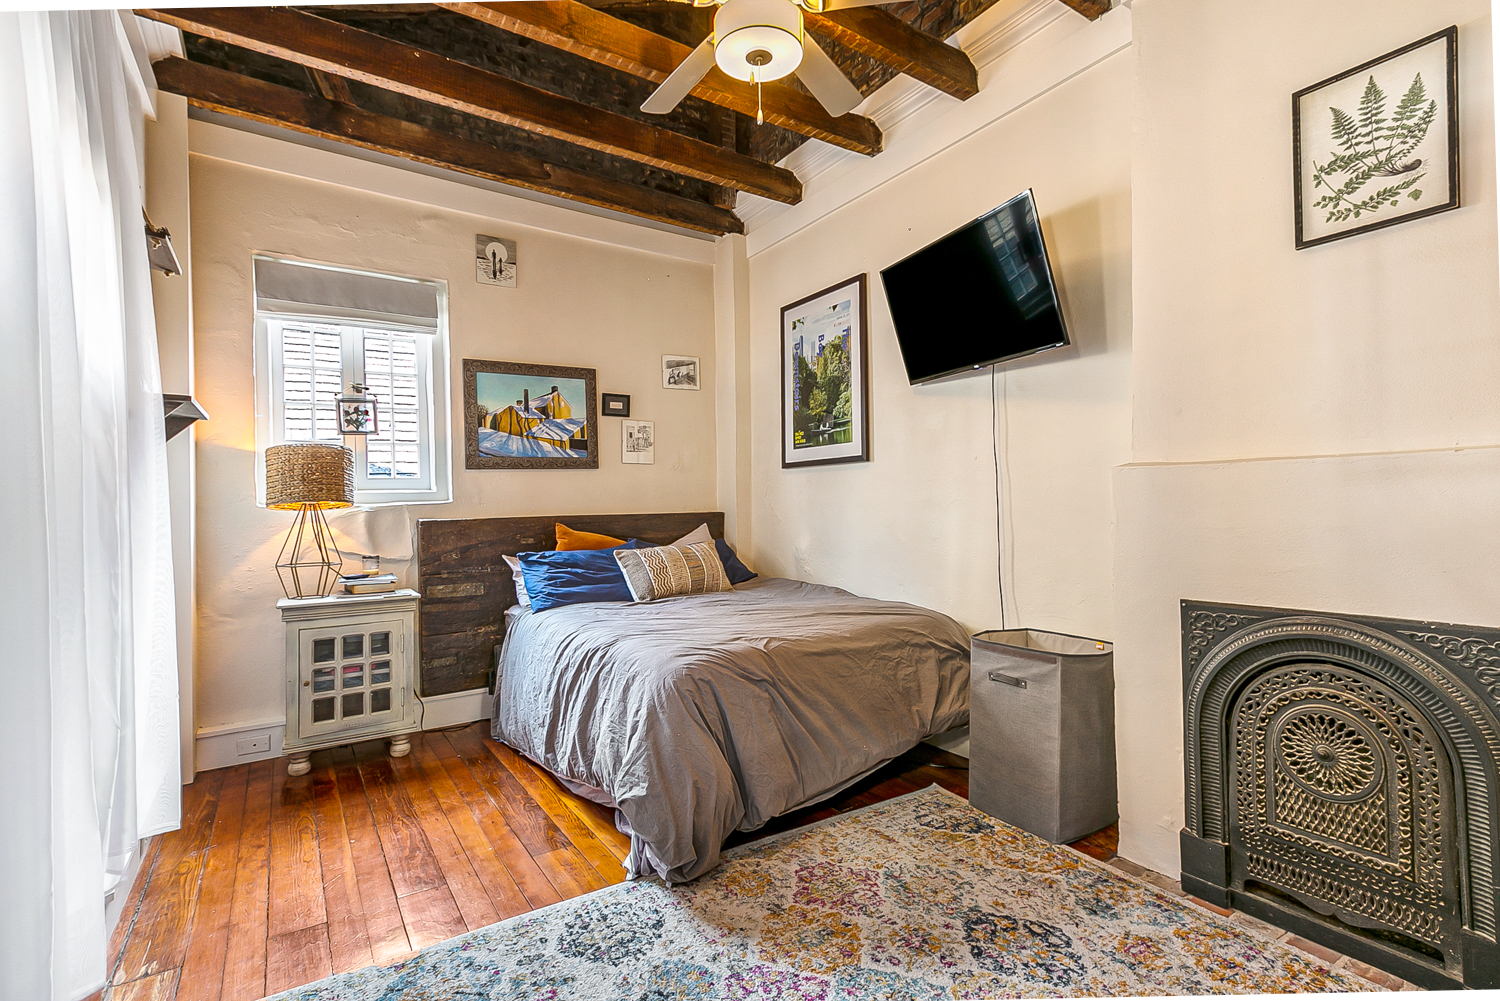 French Quarter, Condo, 1 beds, 2.0 baths, $2400 per month New Orleans Rental - devie image_9